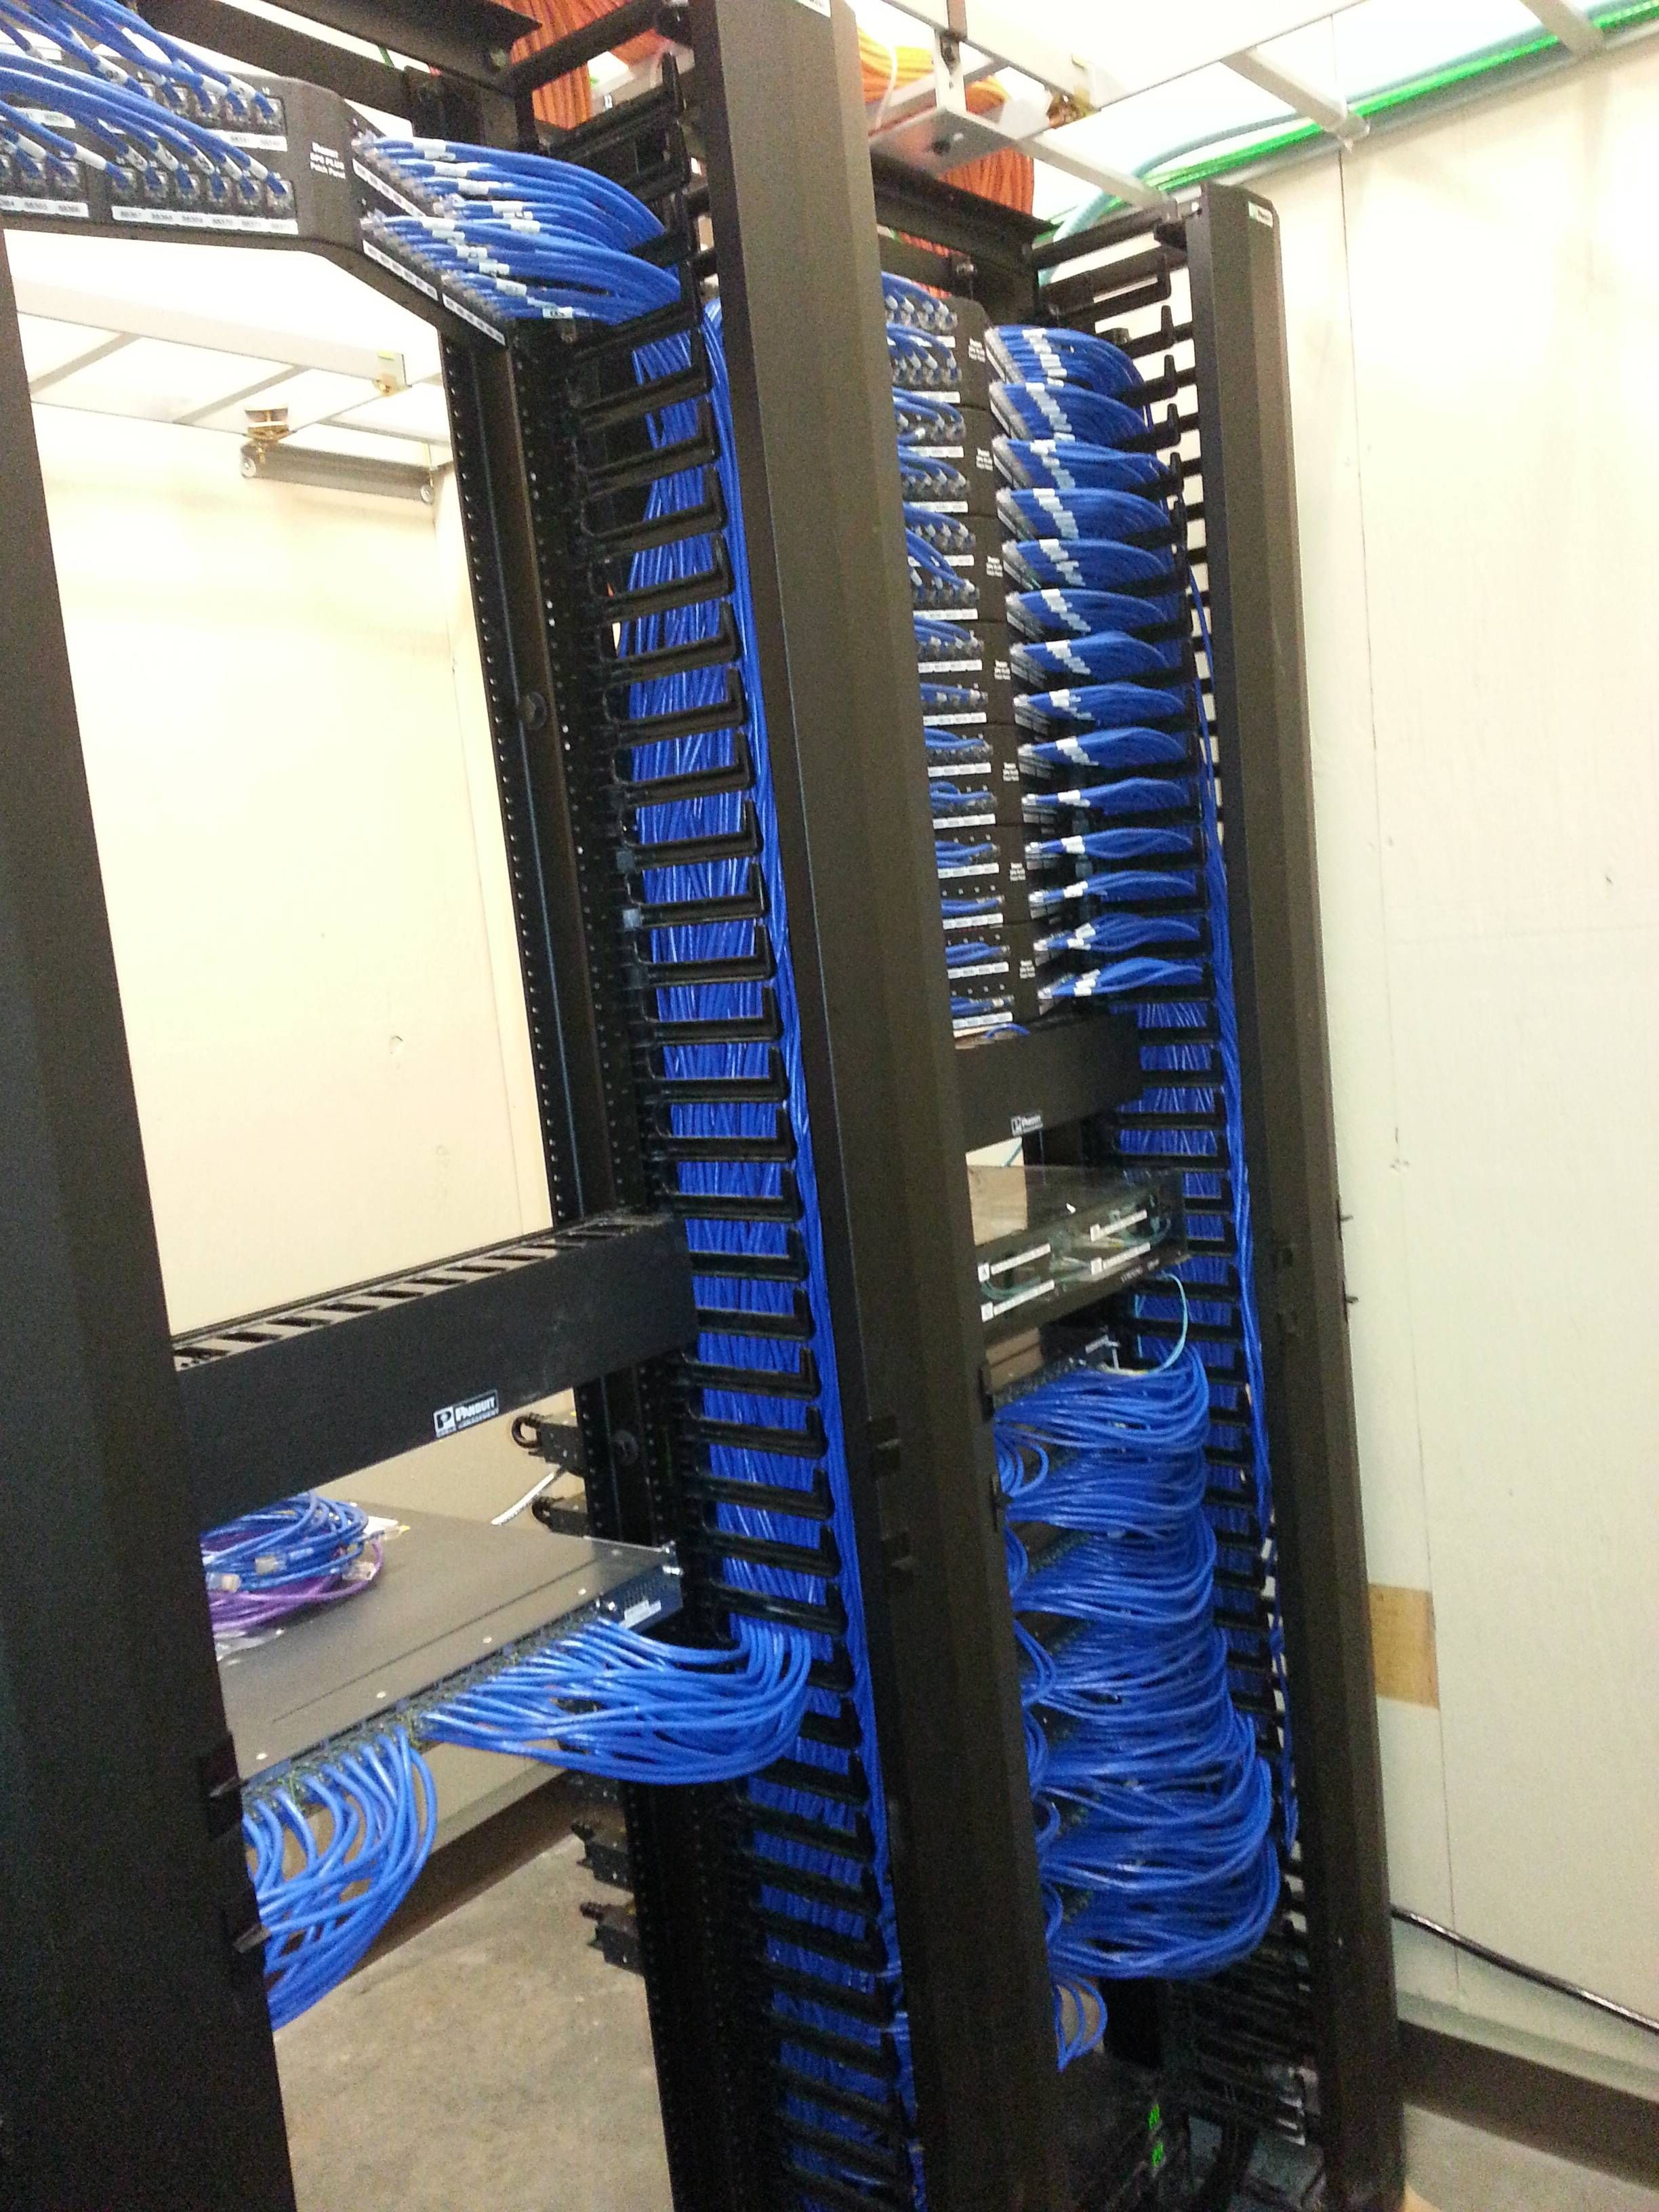 small resolution of blue ethernet cables and patch panels galore looks neat and tidy